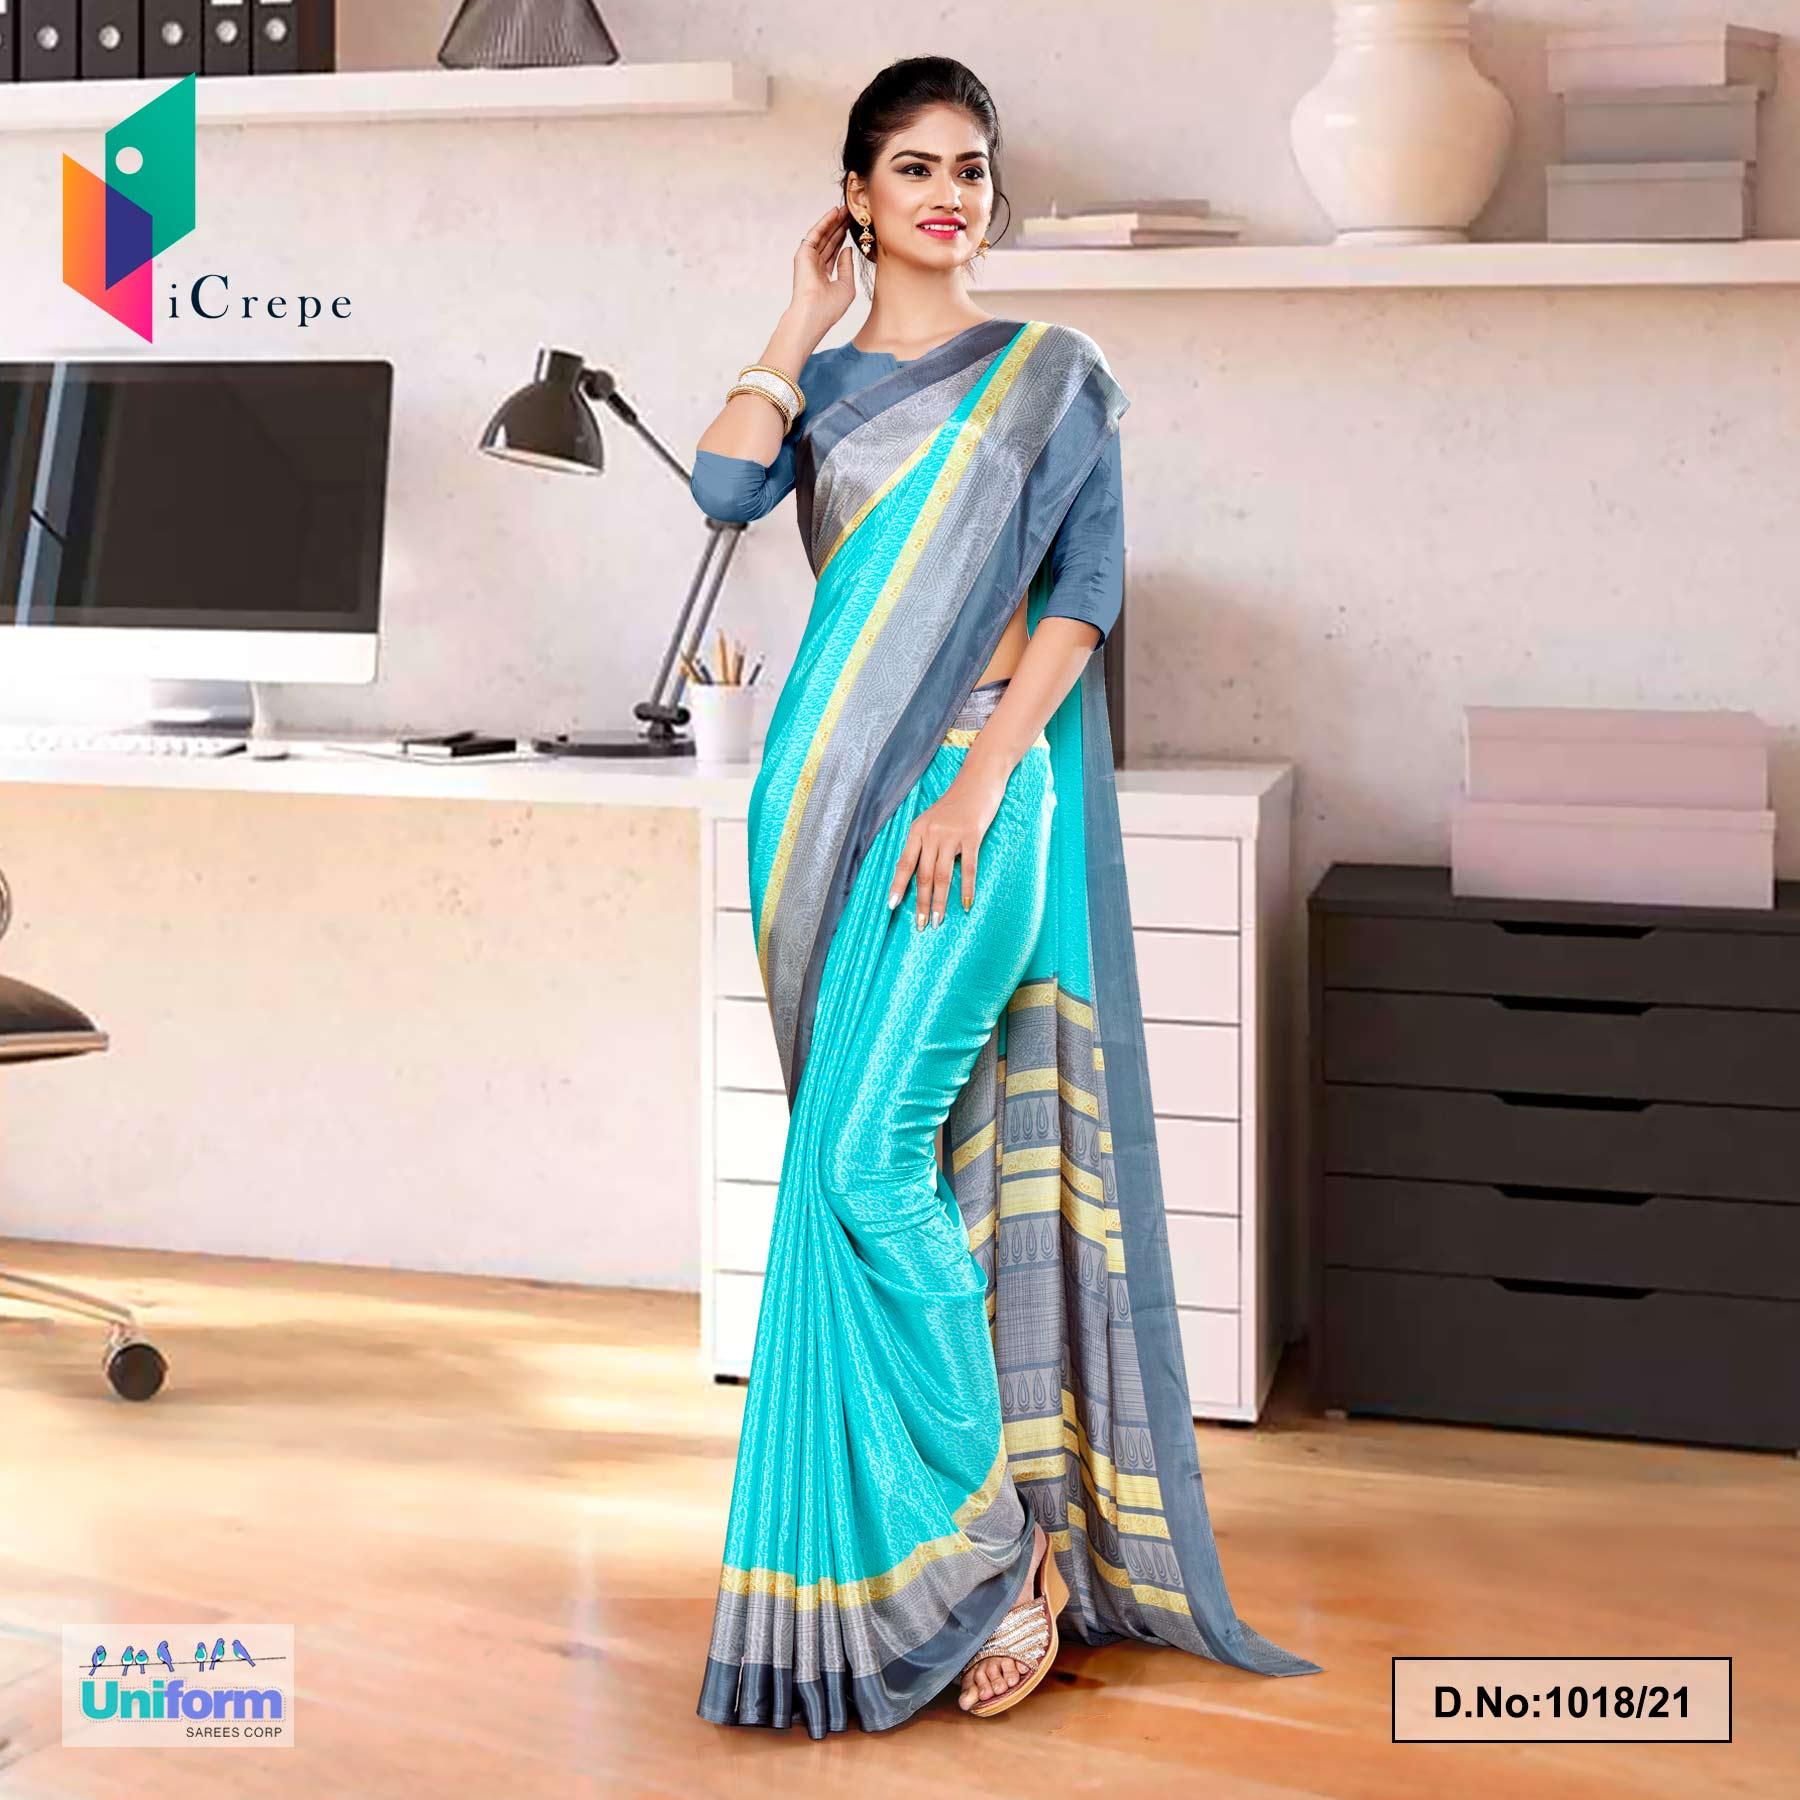 Sea Green Gray Premium Italian Silk Crepe Saree for Annual Function Uniform Sarees